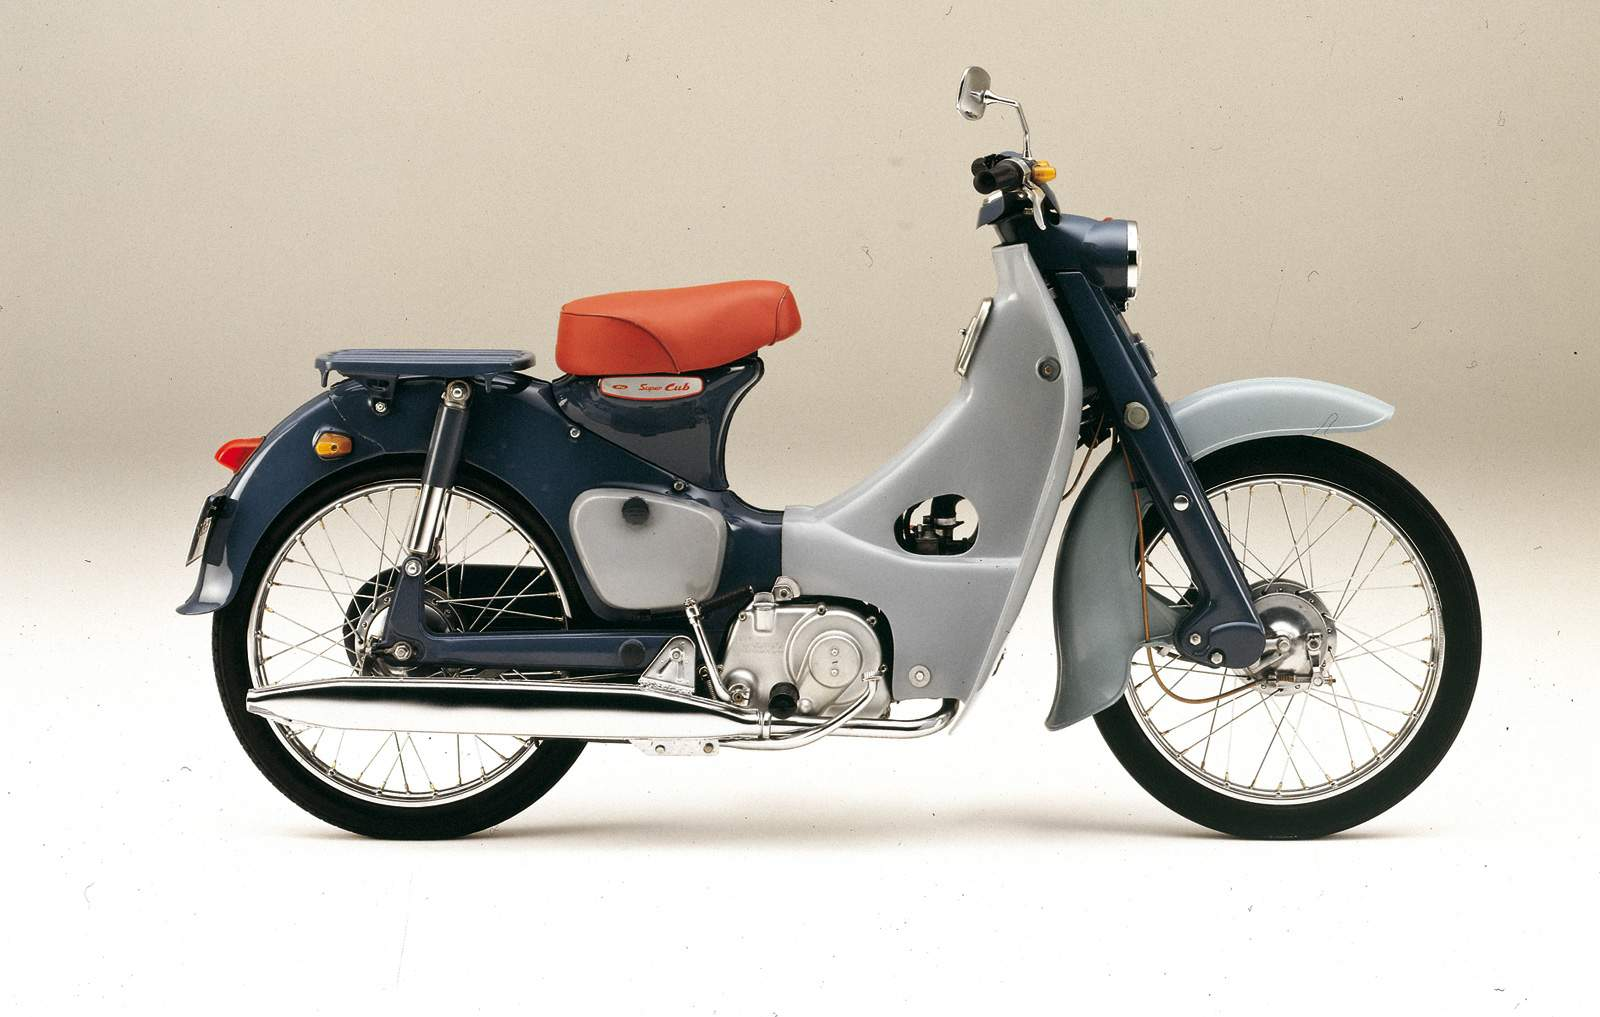 Мотоцикл Honda C 70 Super Cub Scooter) 1969